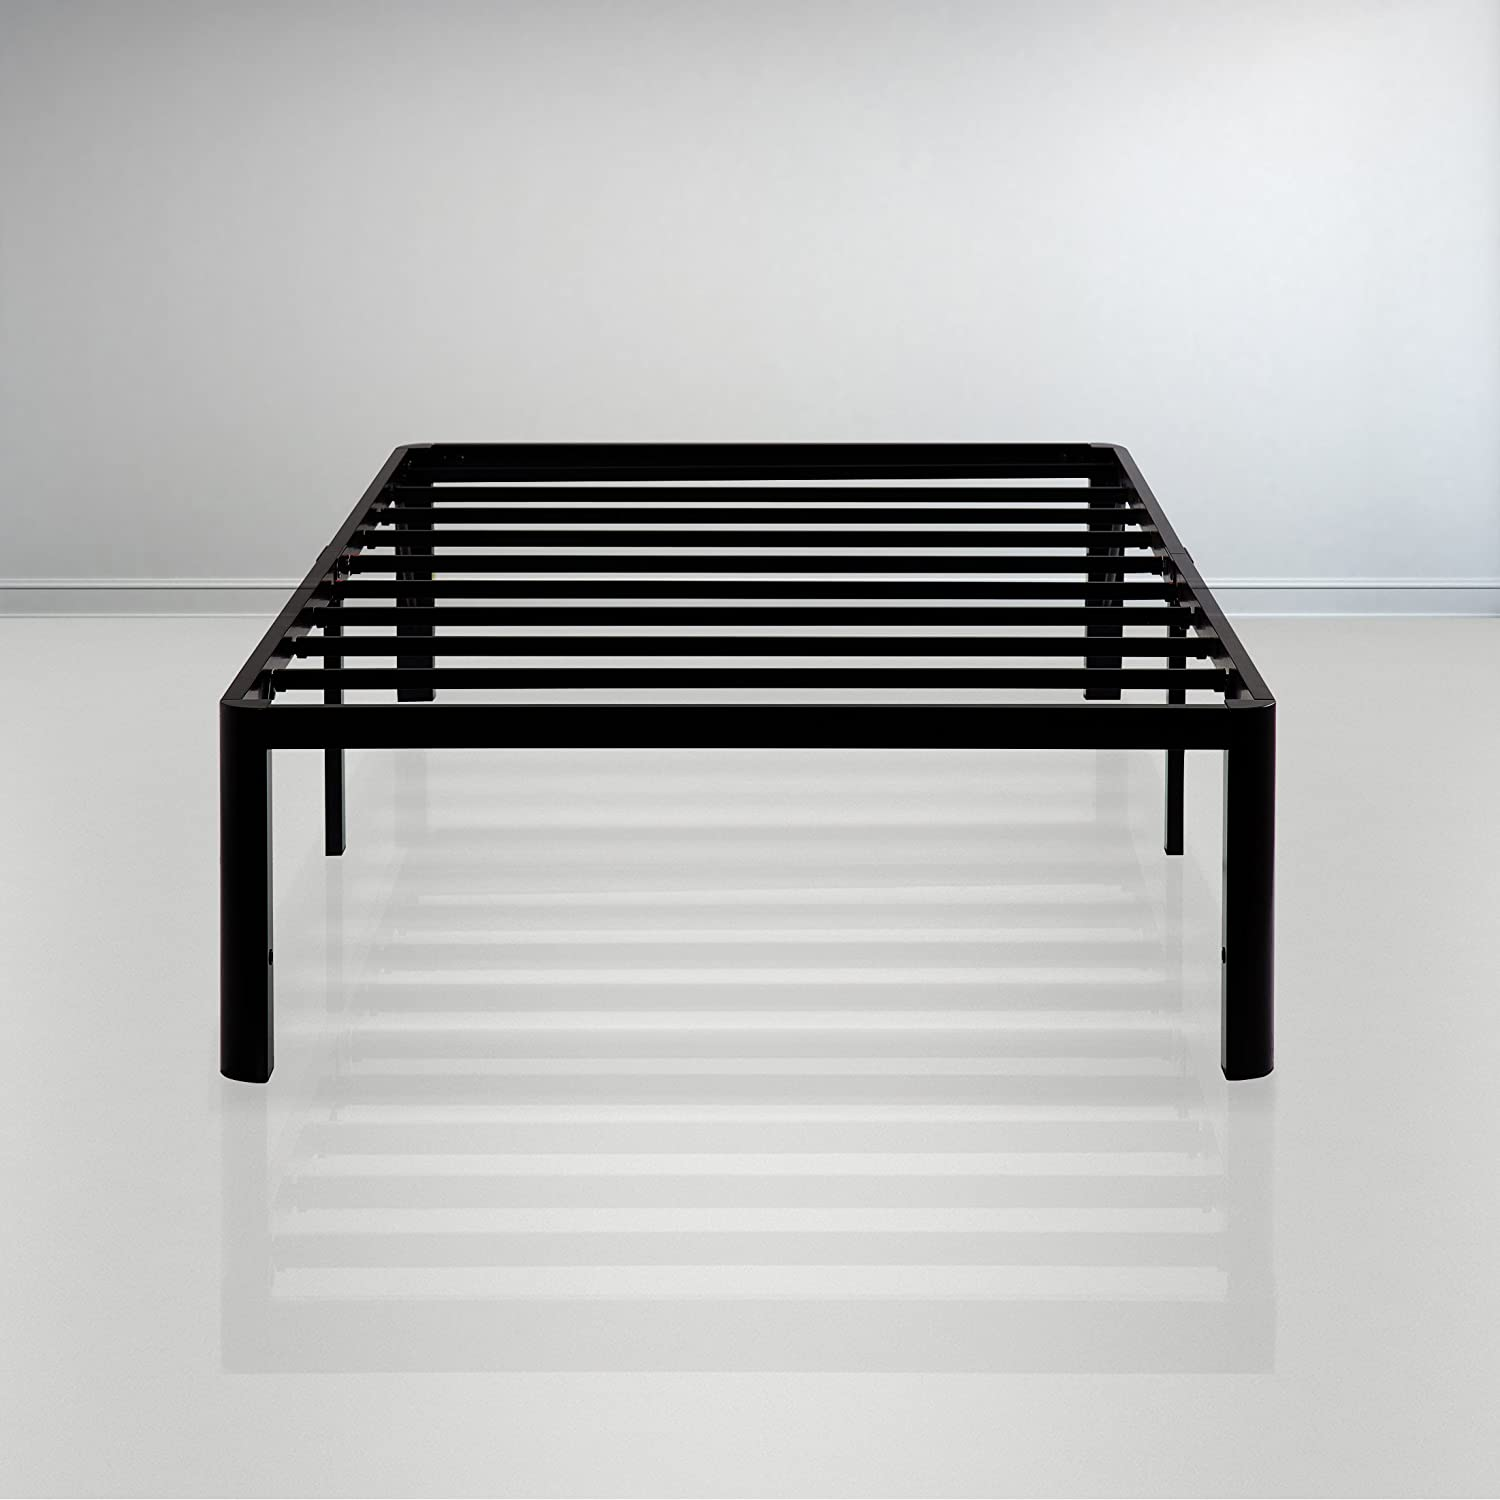 Sleeplace 14 Inch Heavy Duty Steel Slat Anti-Slip Support, Metal, Black Twin XL Size Bed Frame,